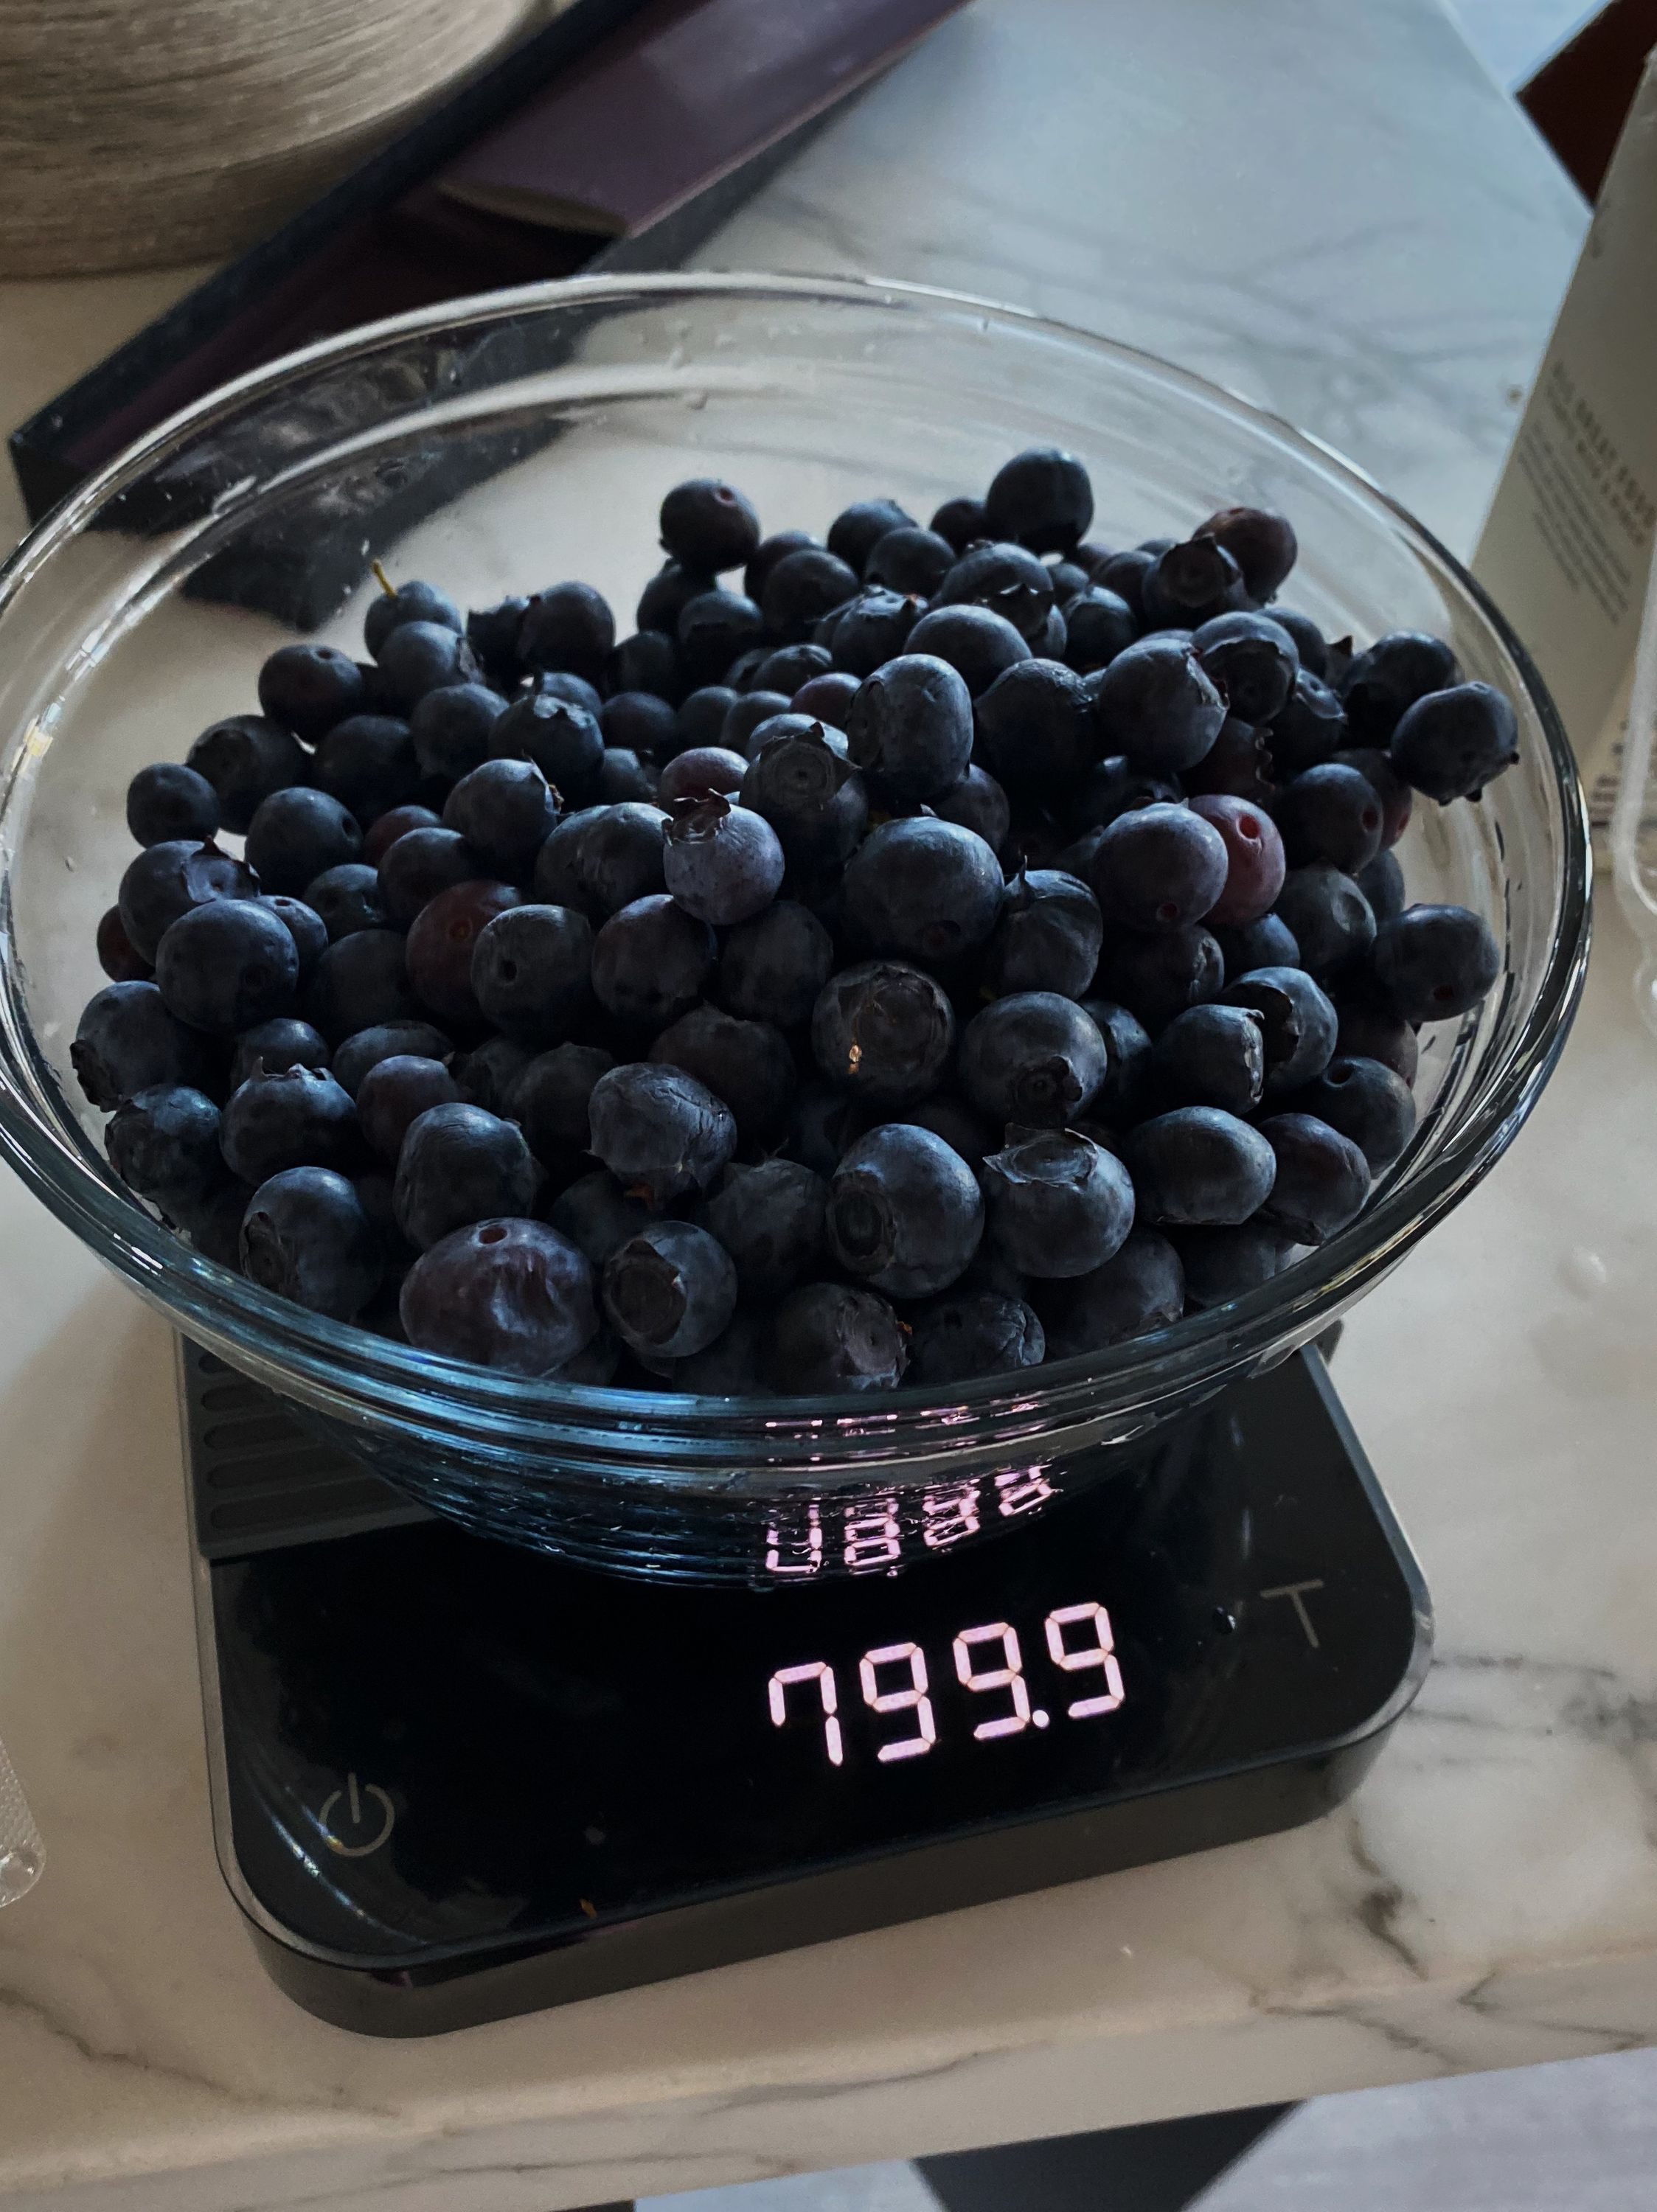 Blueberries on a scale